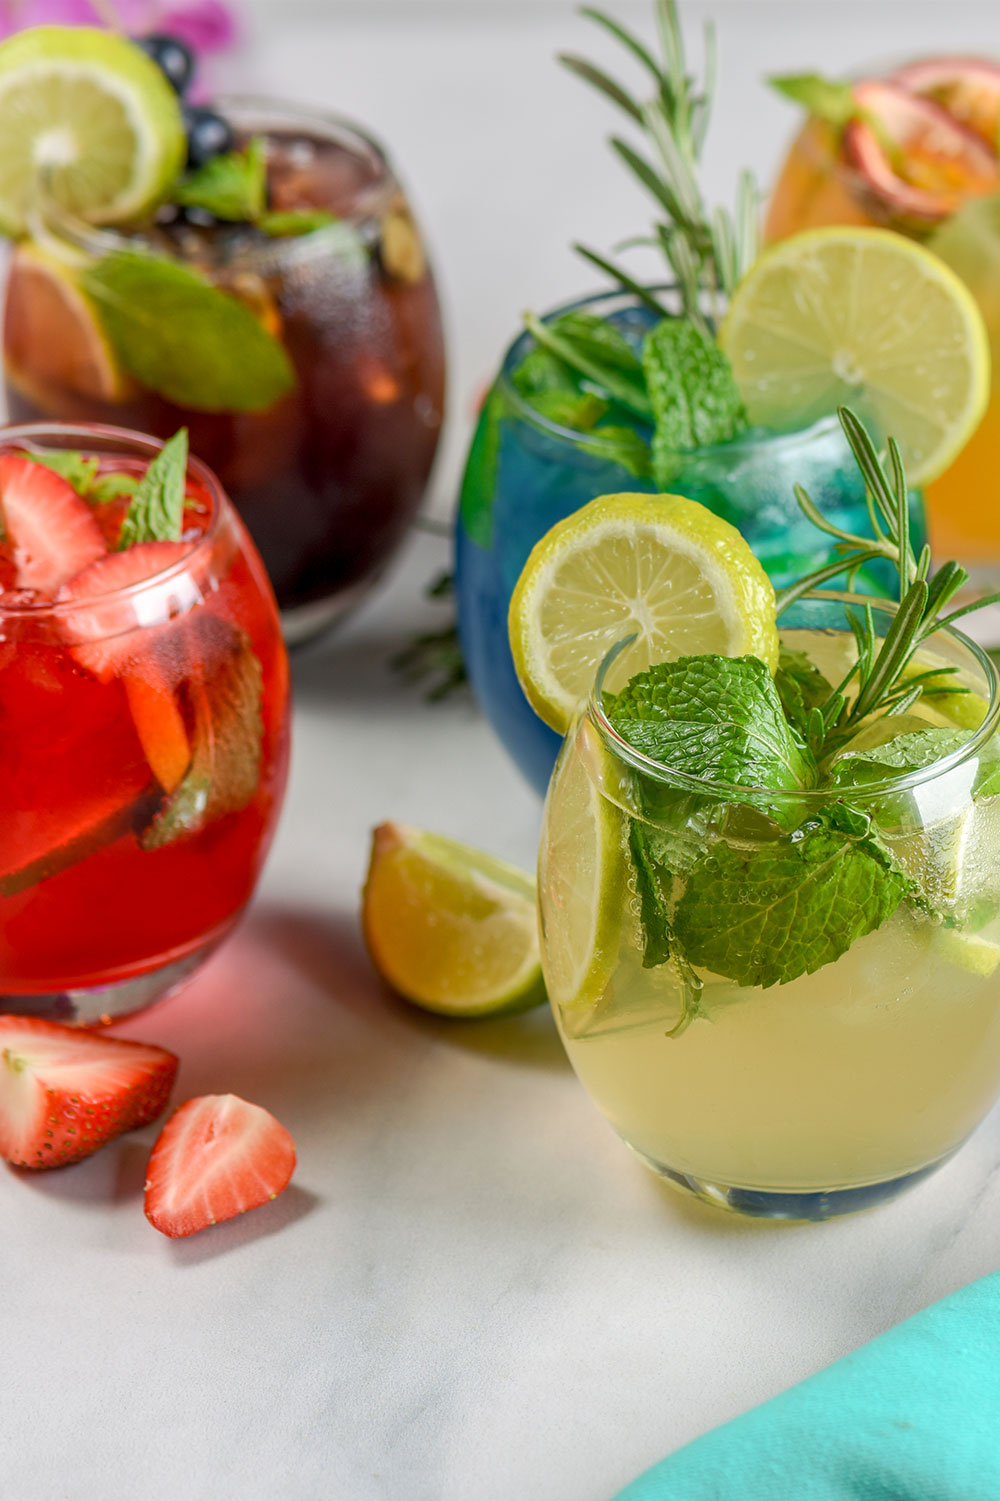 Food Photography Services in United Arab Emirates, UAE